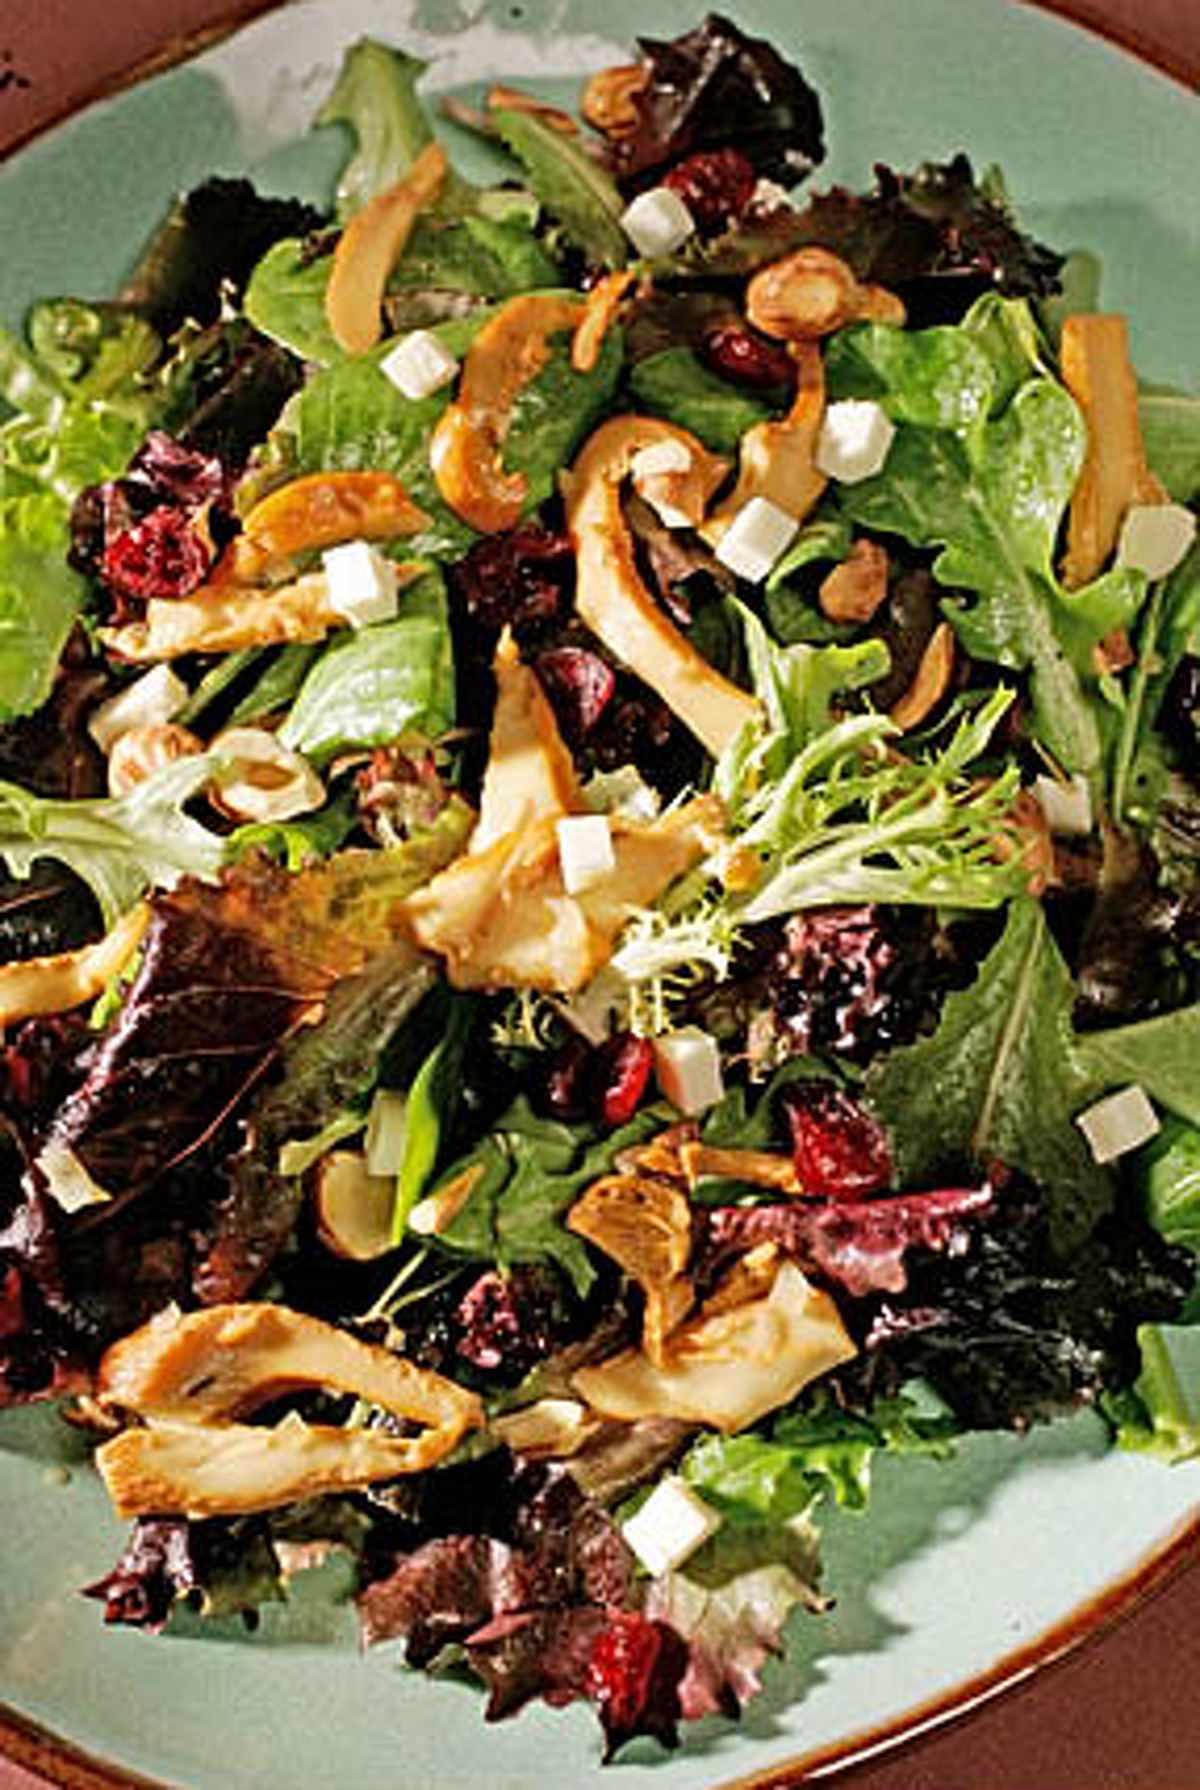 Warm Chanterelle & Goat Cheese Salad With Walnuts And Walnut Oil Using walnut oil and toasted walnuts gives this simple seasonal salad an extra dimension of flavor. Toasted hazelnuts and hazelnut oil can also be substituted, if you prefer. [recipe]